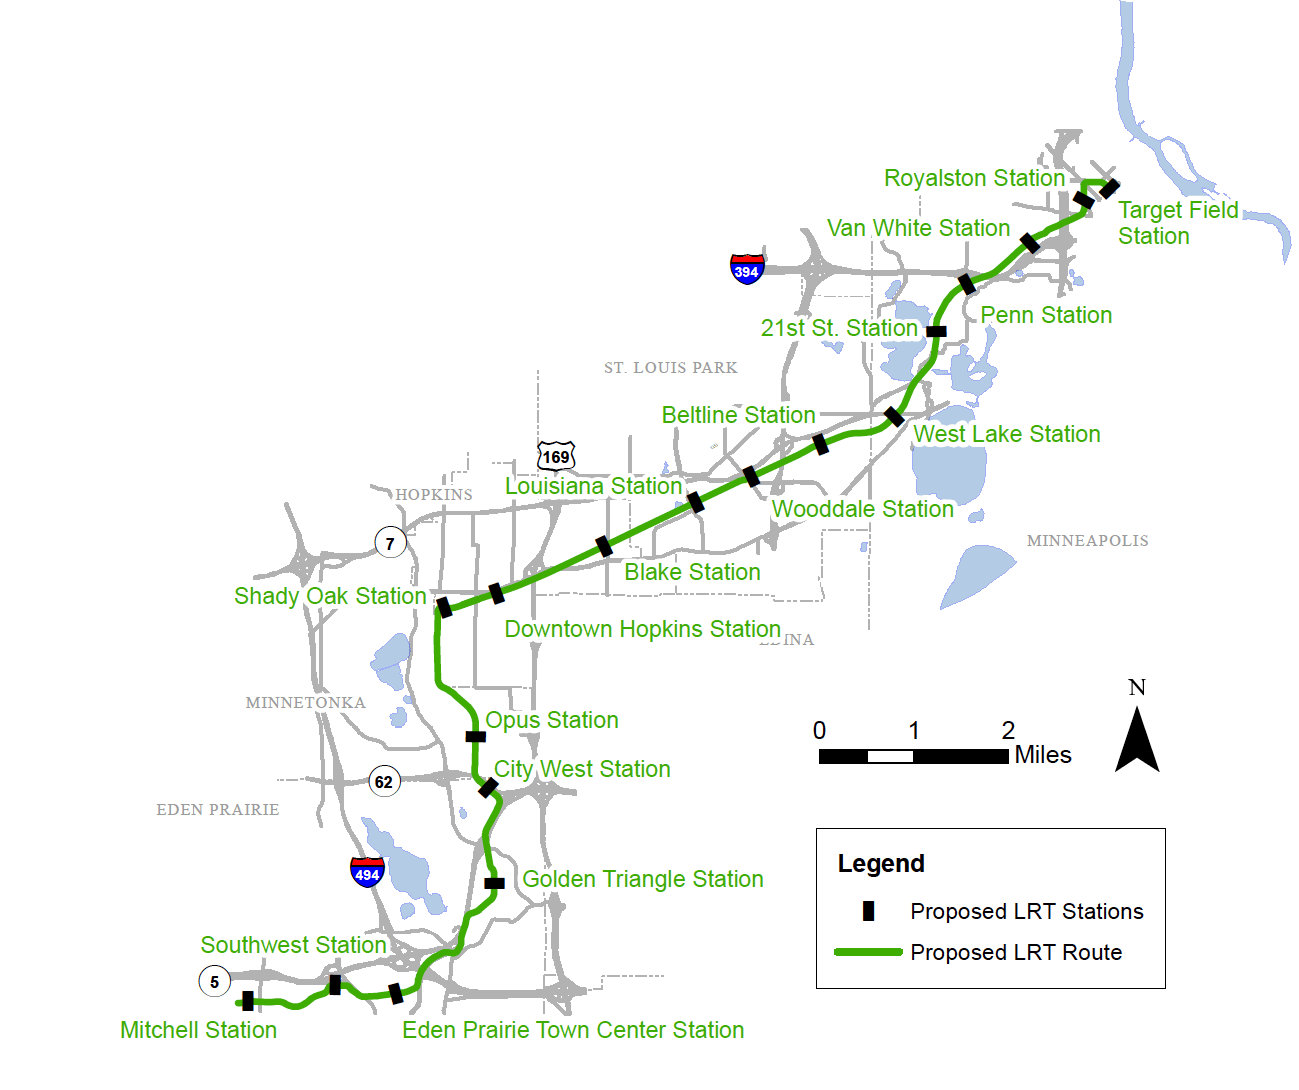 Proposed stations on the Southwest light rail rout